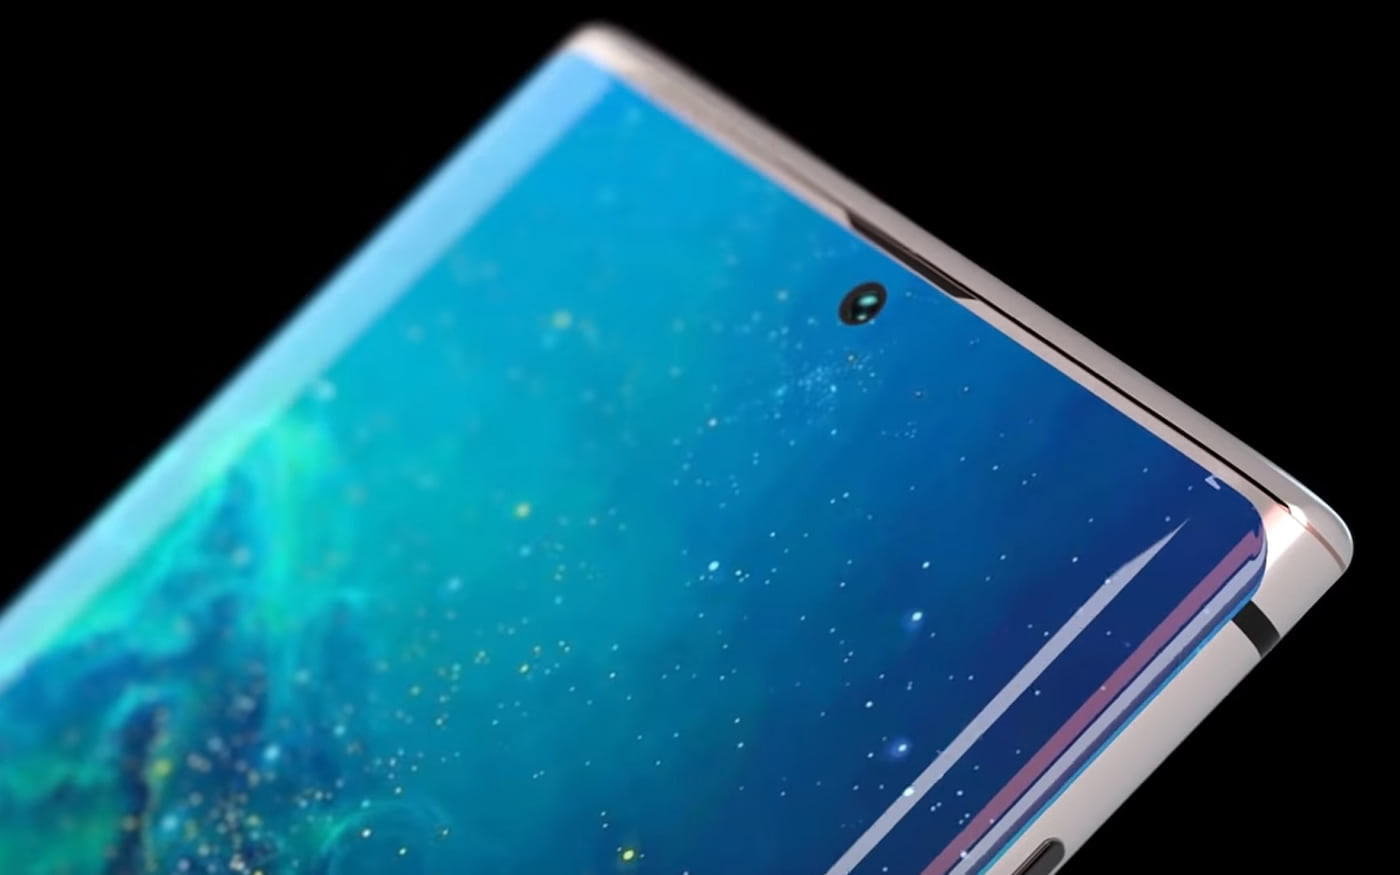 New rumors about the Galaxy Note 10 and the Note 10 Pro